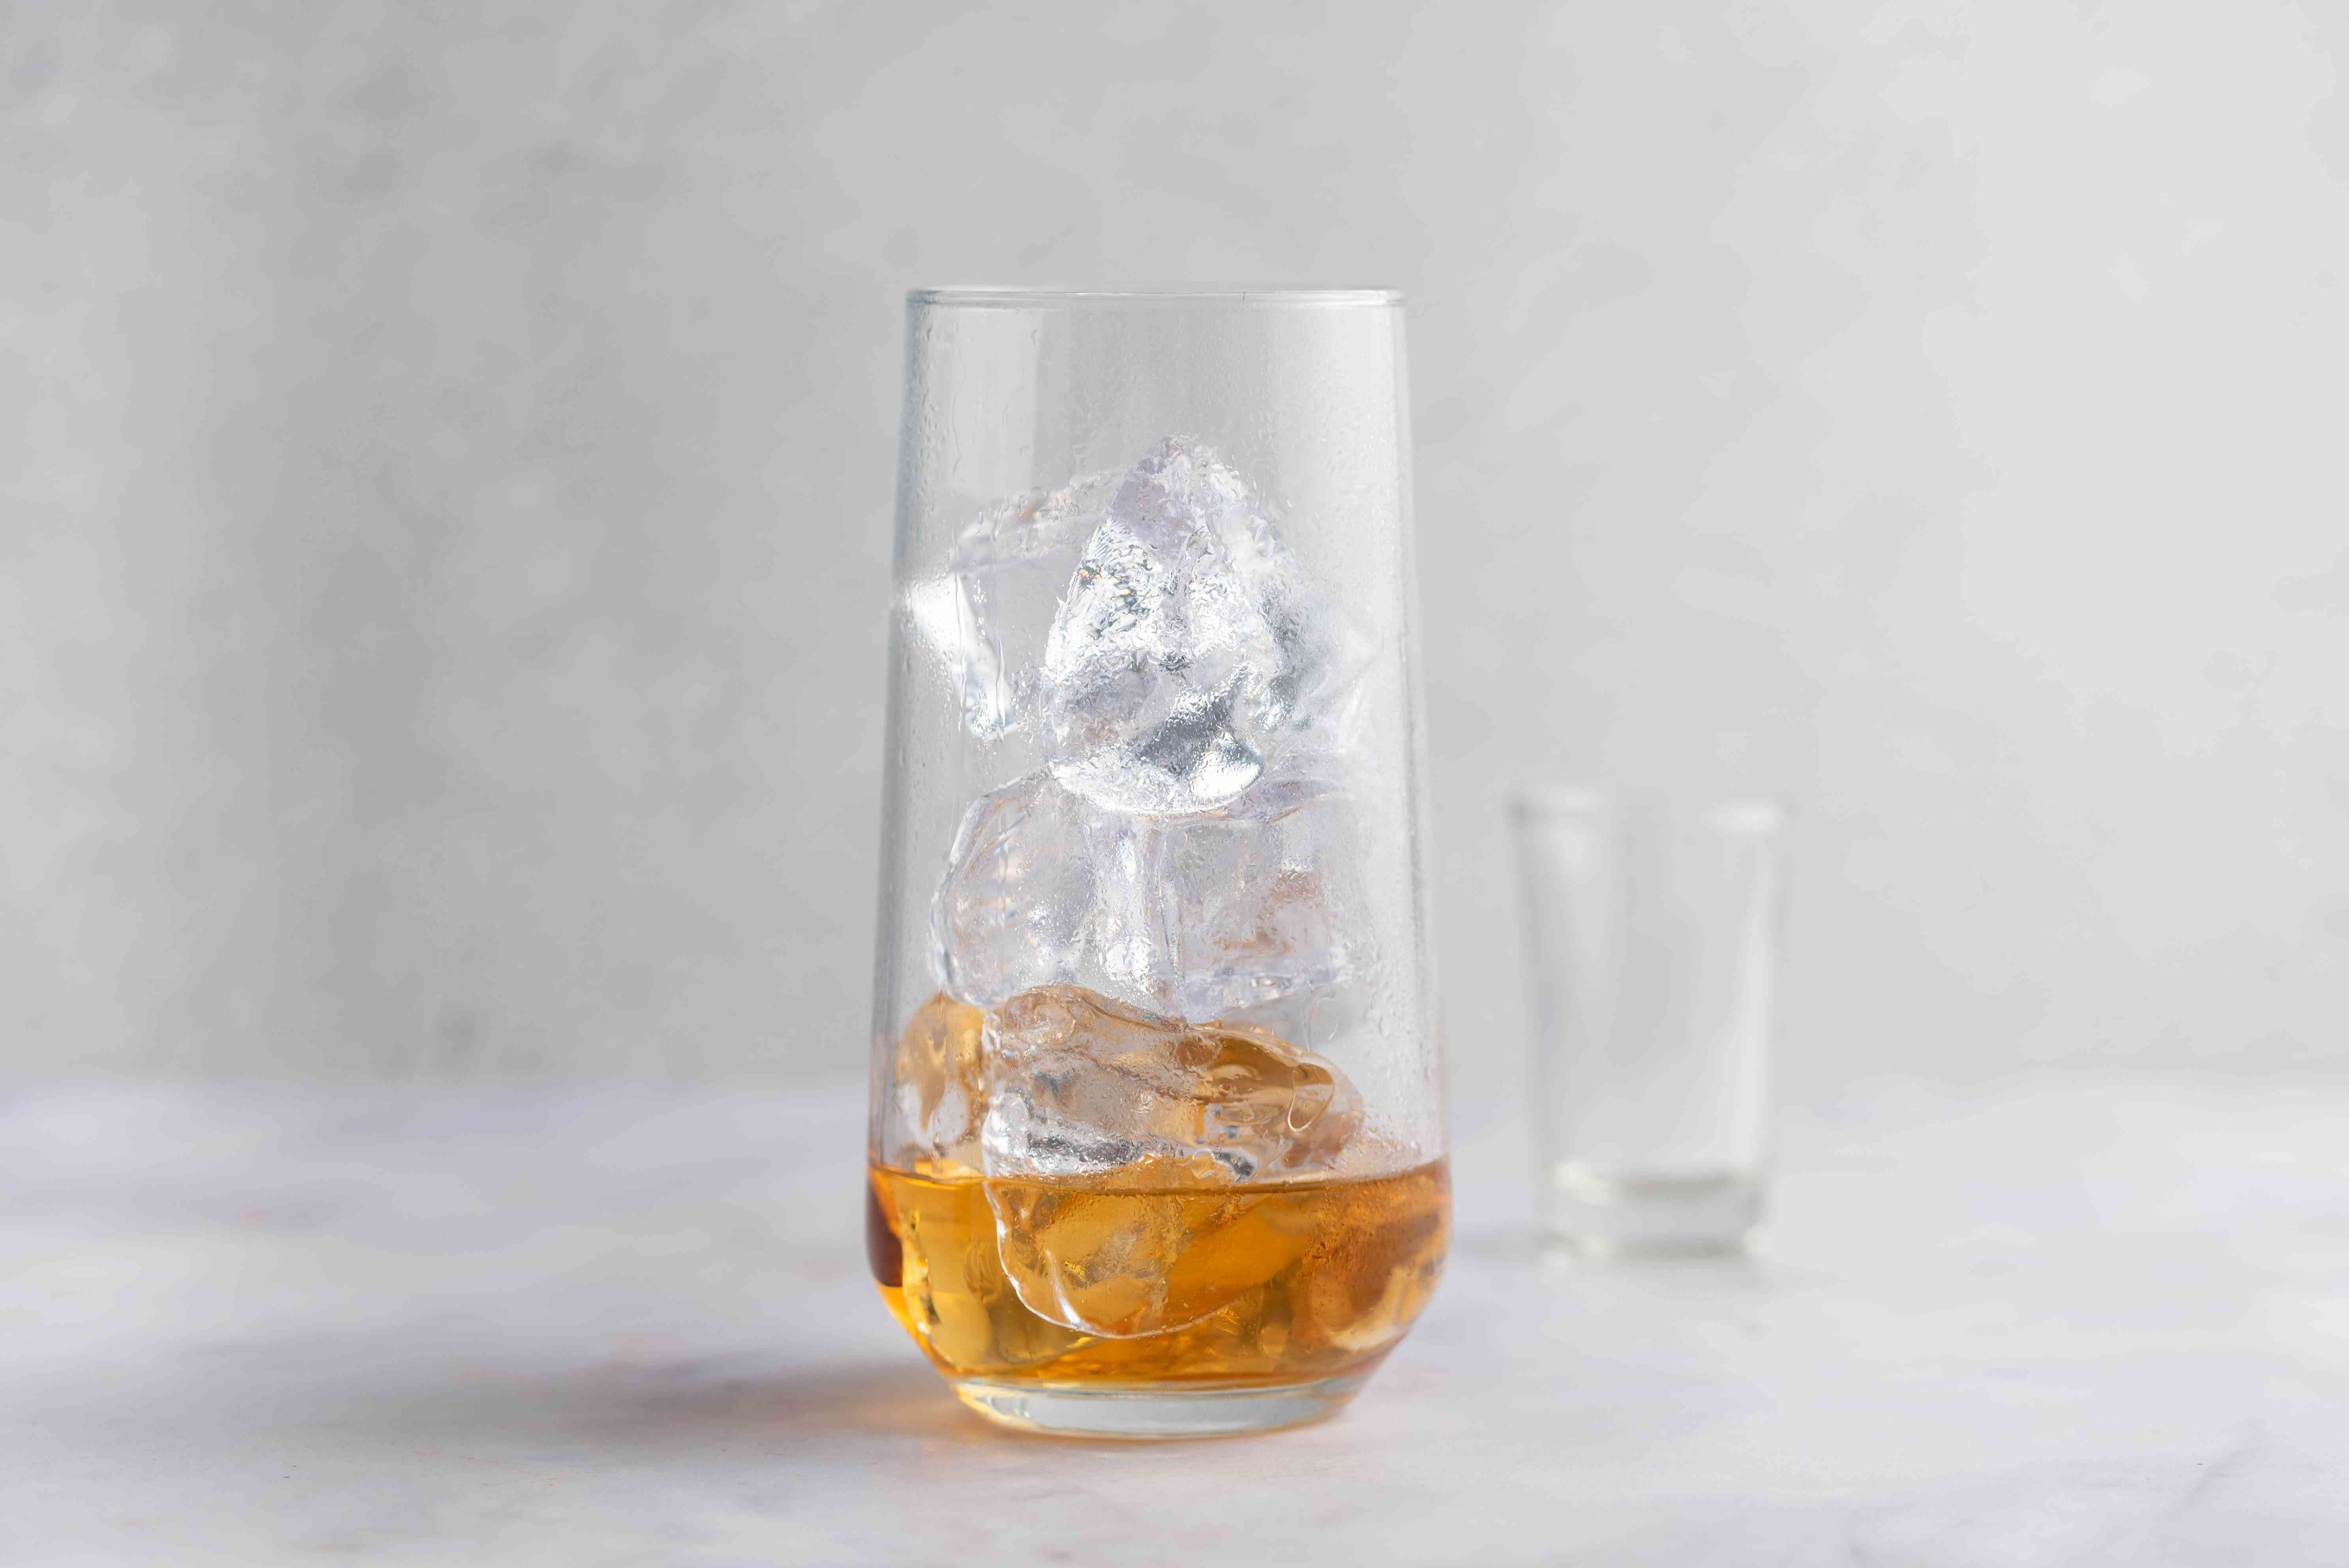 Pour the whiskey into a highball glass